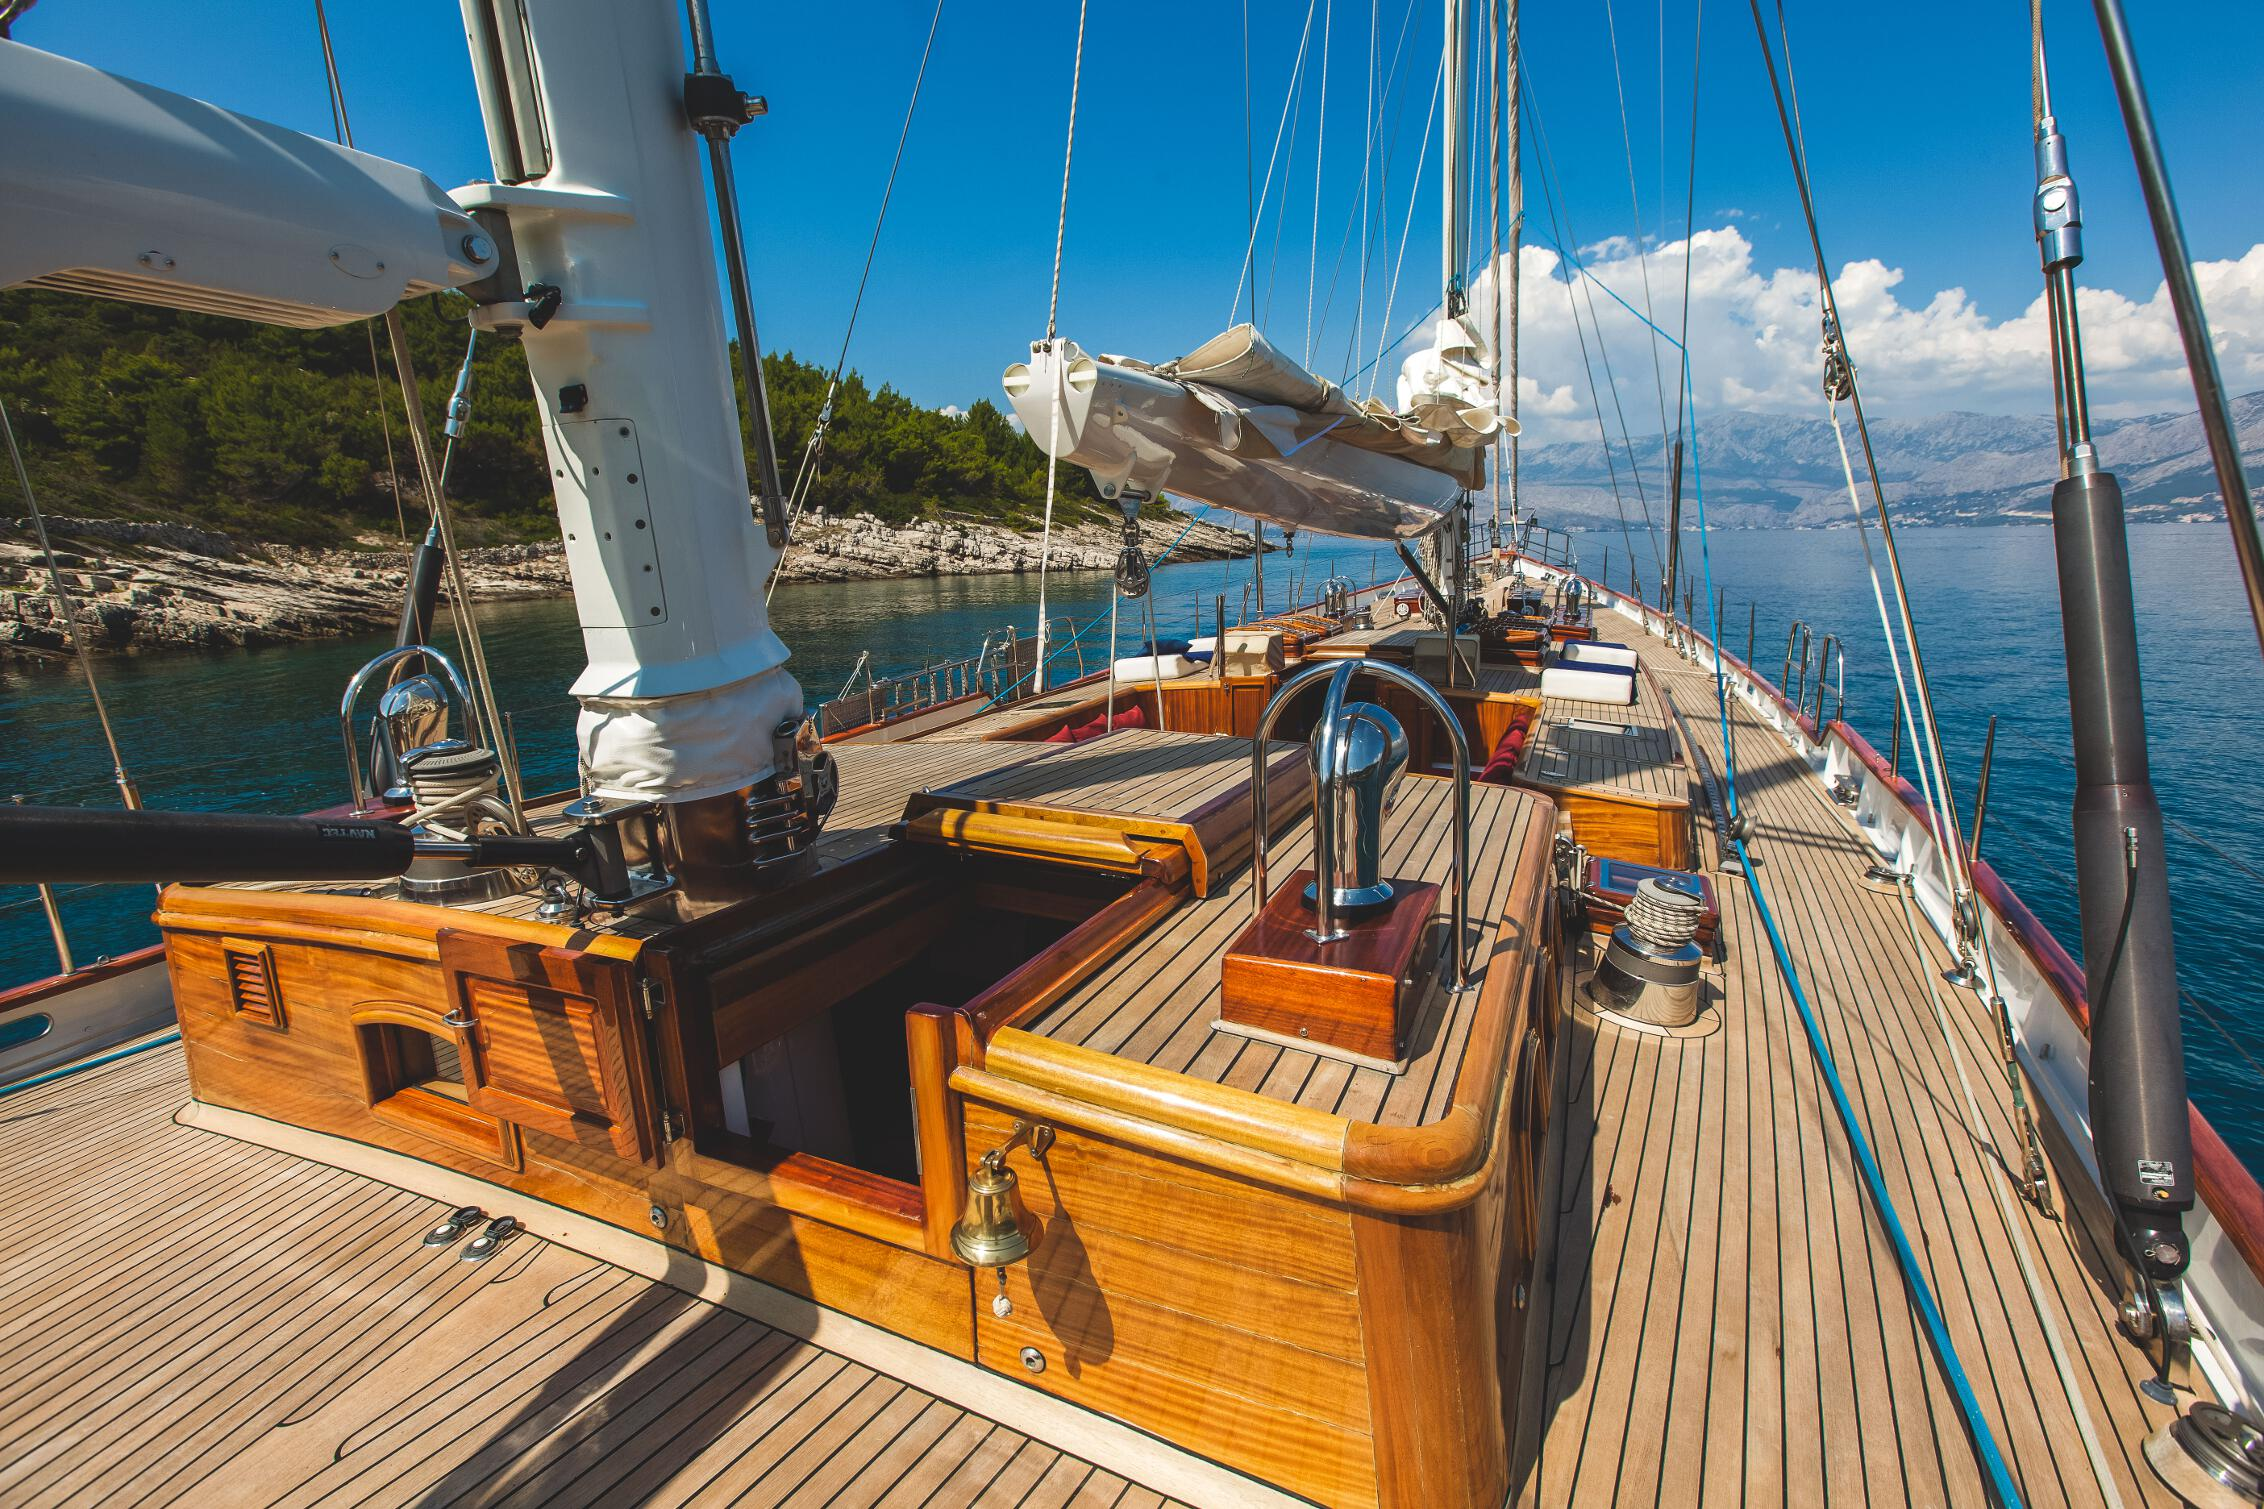 SY Lauran A Teak Deck All Over This Beauty